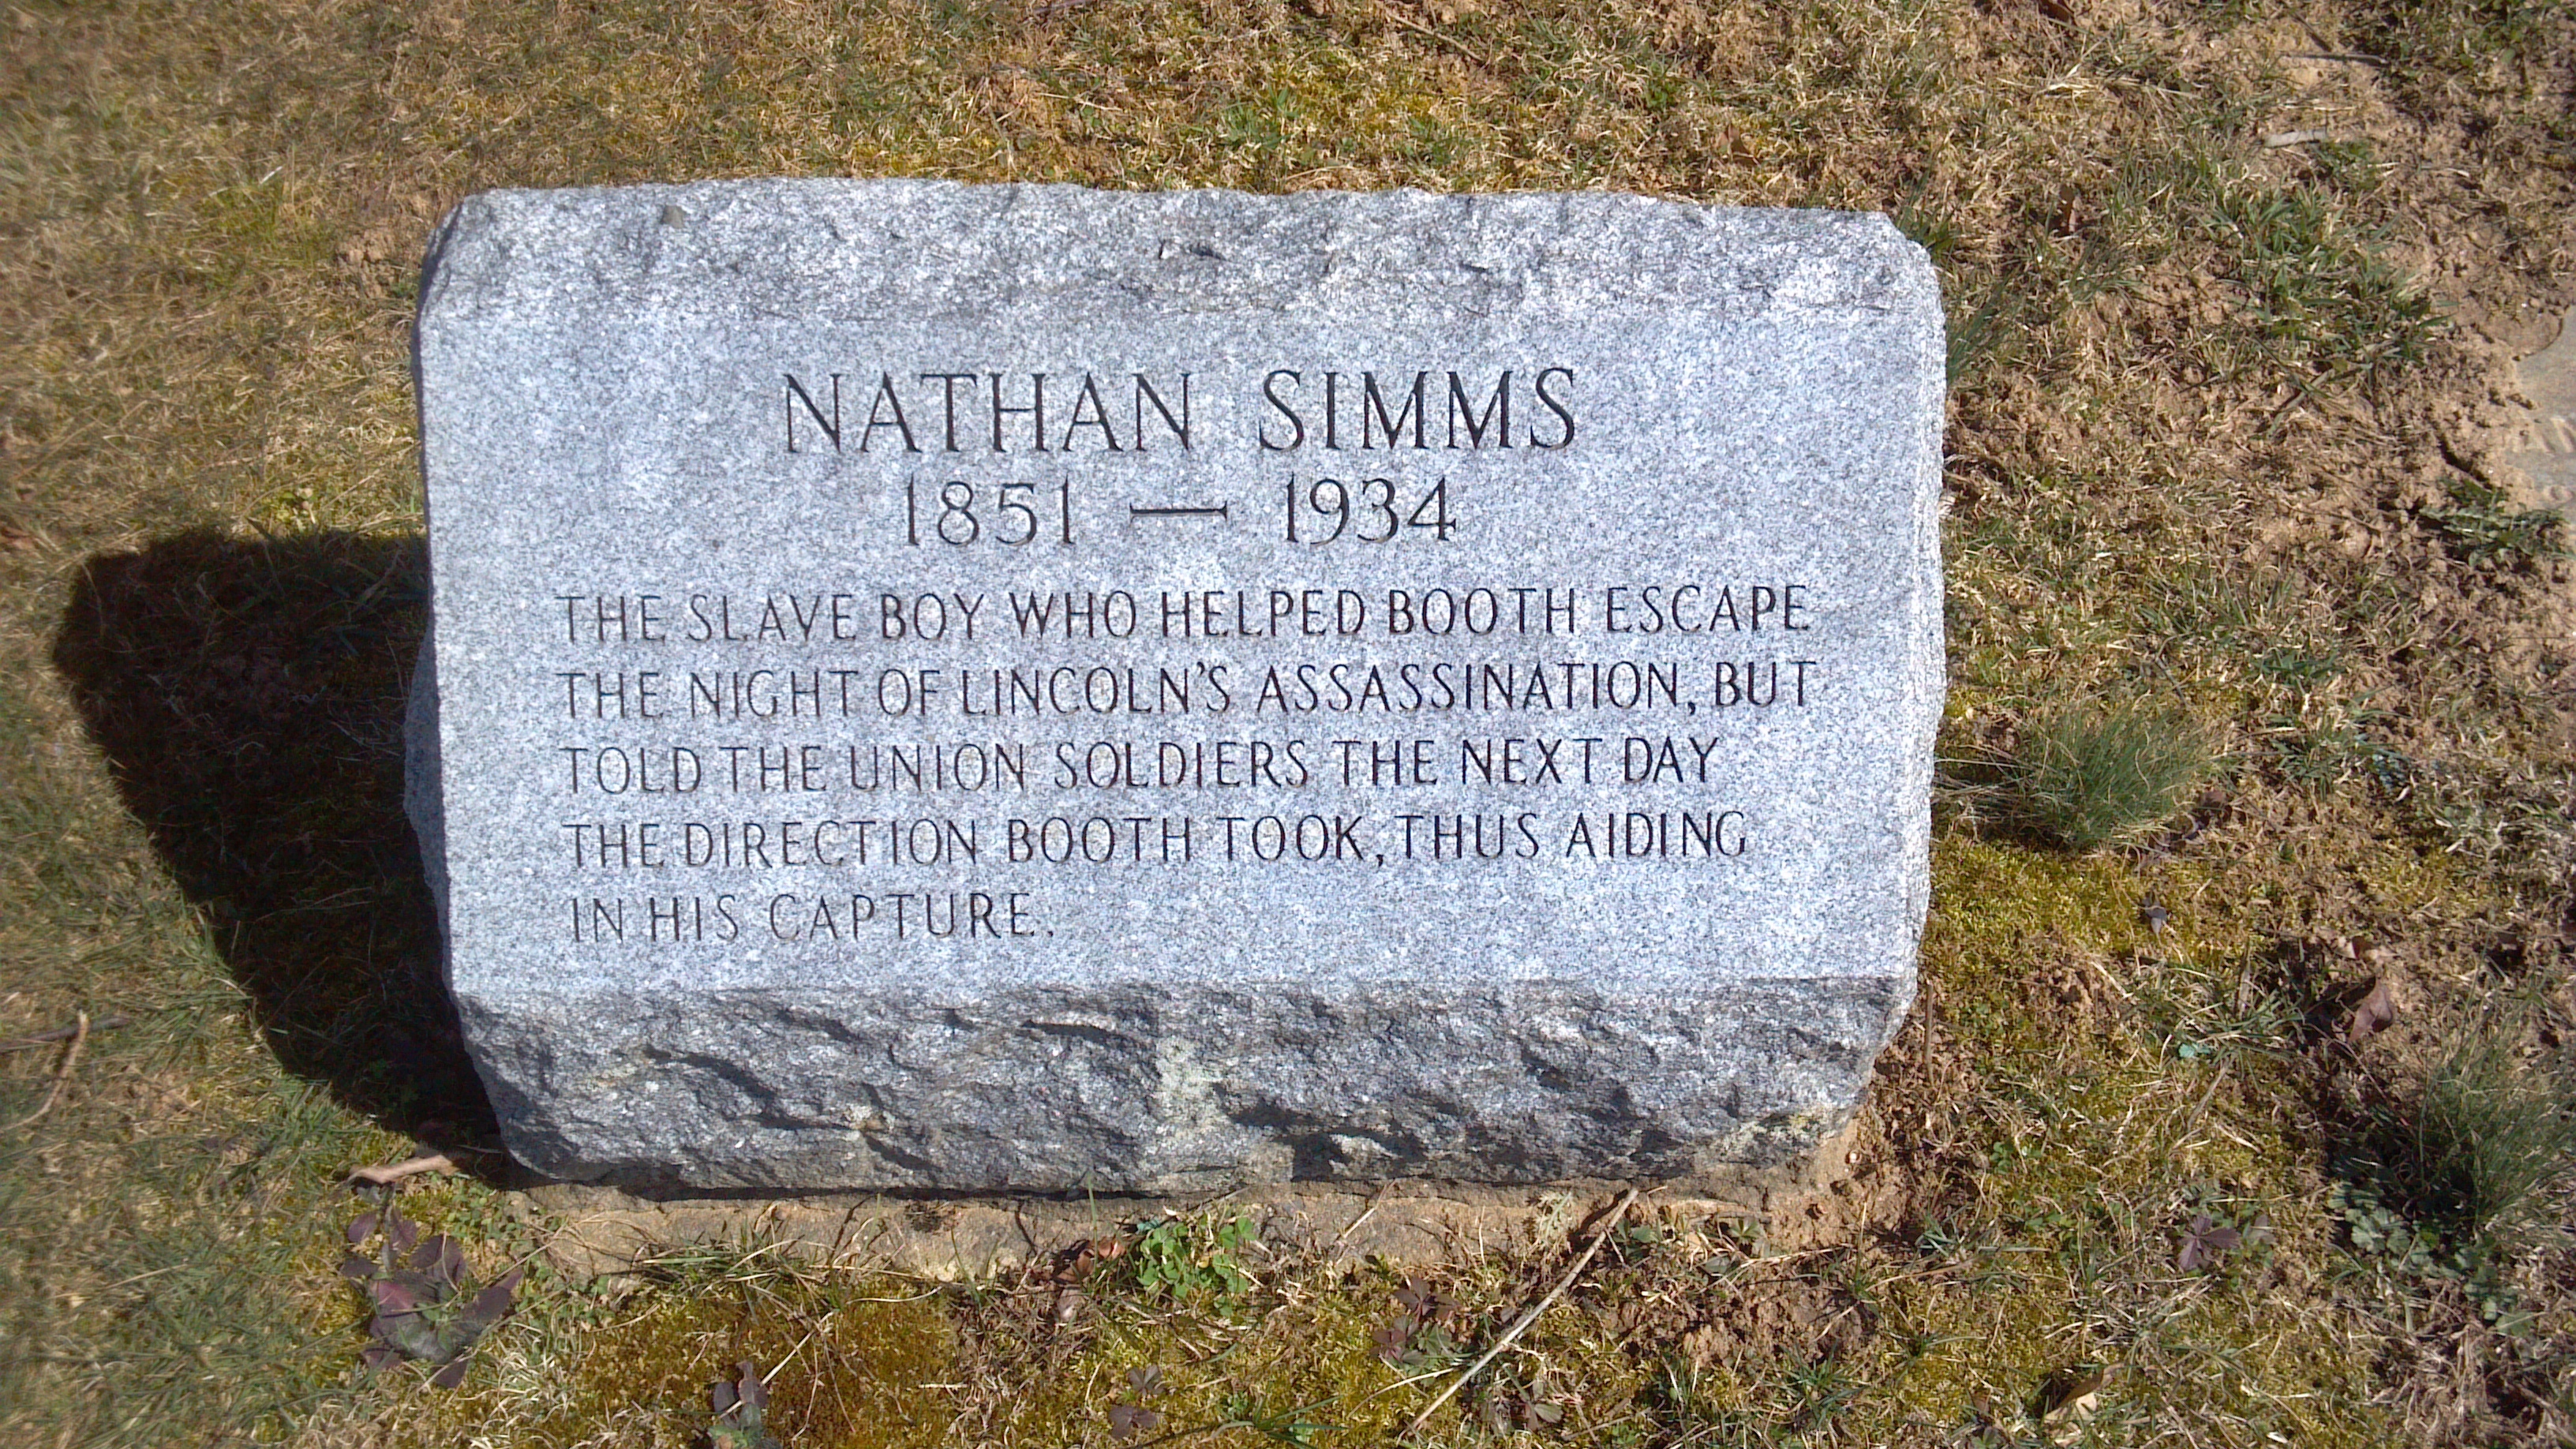 """Nathan Simms's marker placed in 1960 at the Bradford Cemetery near Marshallton, PA.  Famous for being the """"slave boy"""" who helped Booth's escape and capture.  lPhoto by Keith S. Smith, 2012, from History Marker Database (see sources)."""